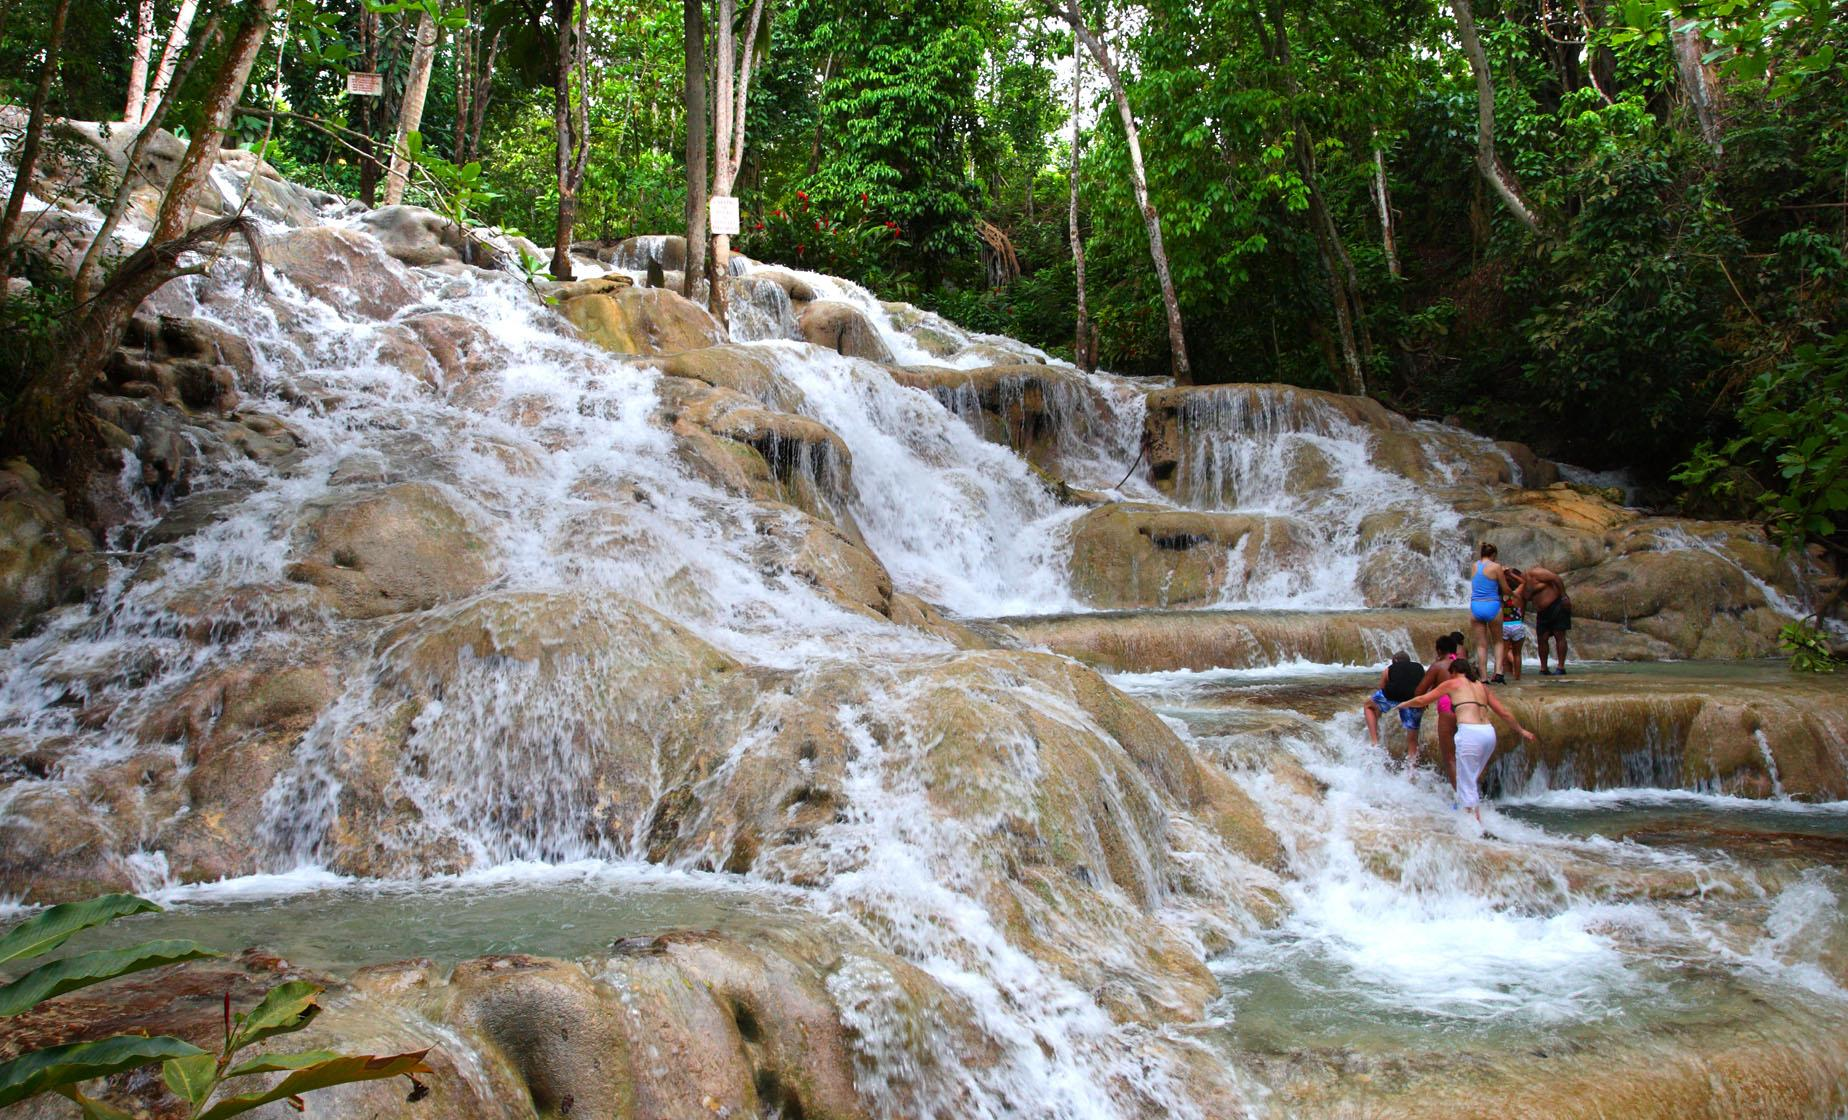 Countryside and Dunns River Falls in Ocho Rios (St. Ann's Bay, Fern Gully, Claremont)